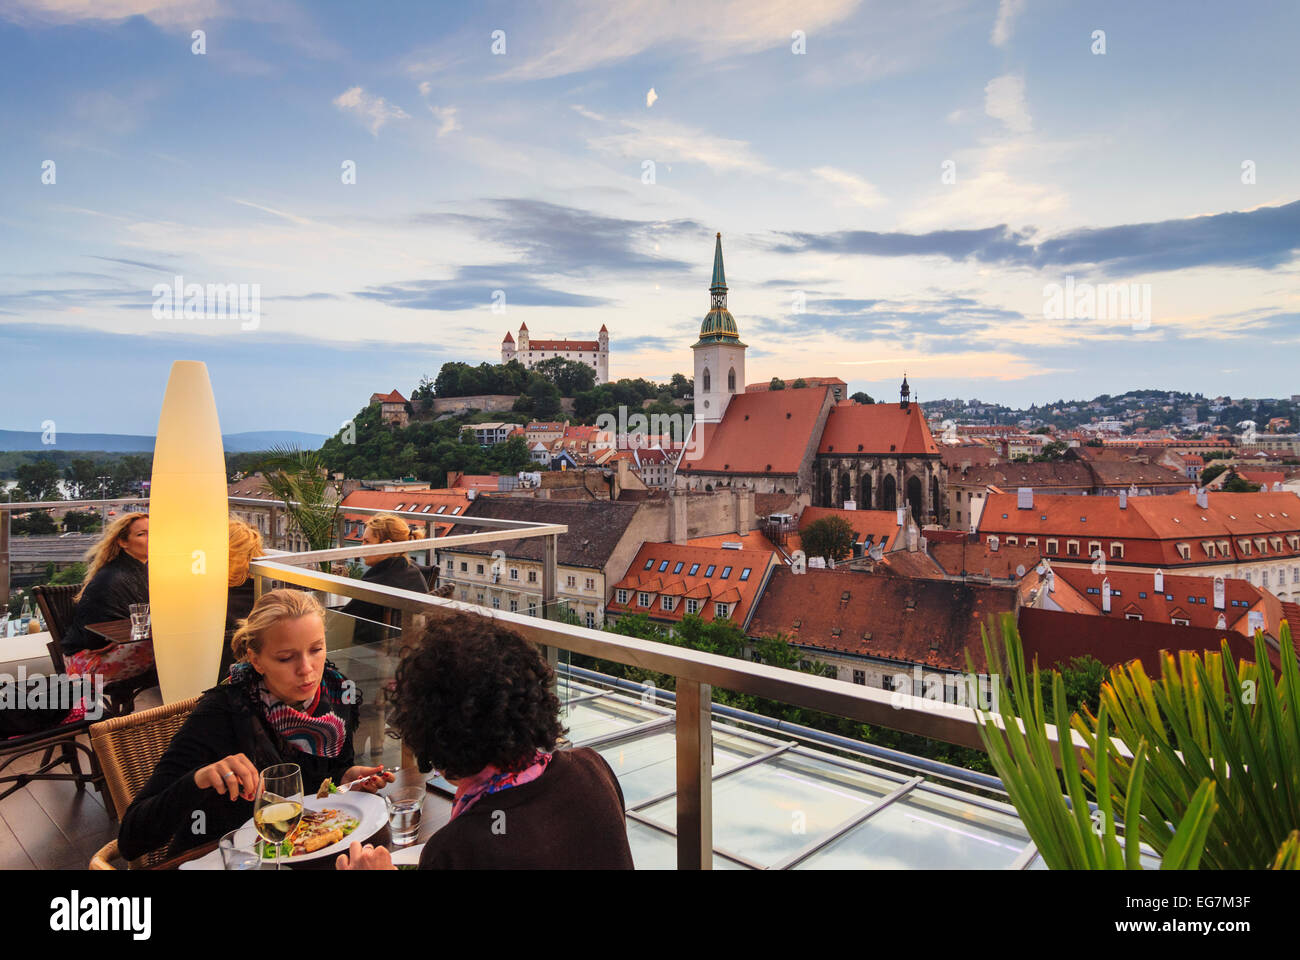 Women at panoramic terrace of Sky restaurant overlooking old town, cathedral and castle in Bratislava, Slovakia - Stock Image